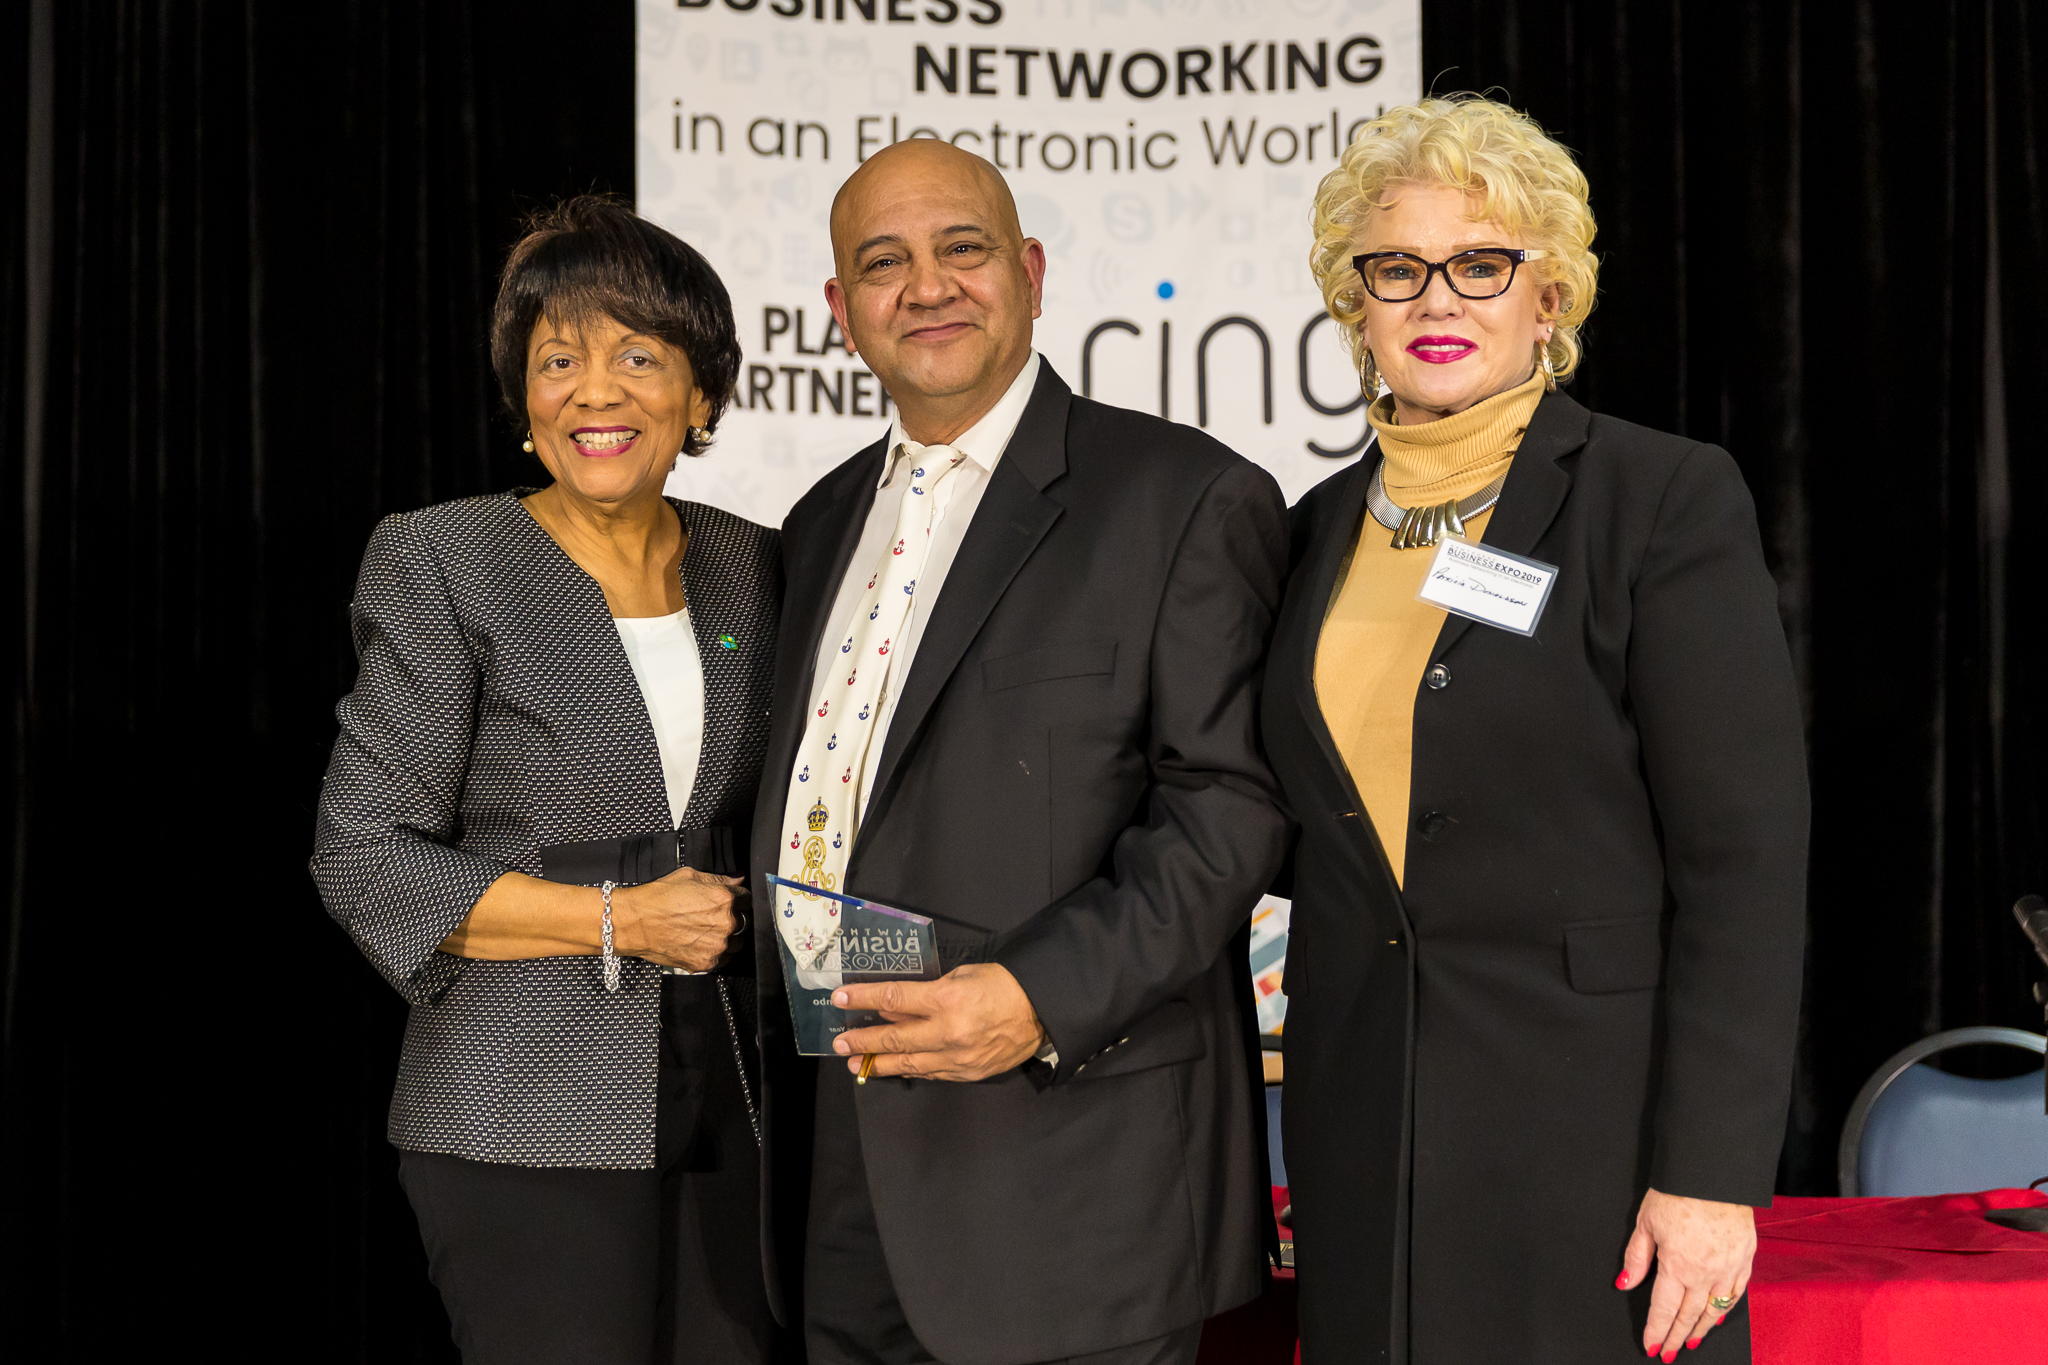 Olivia Valentine and Pat Donaldson with Business award  recipient